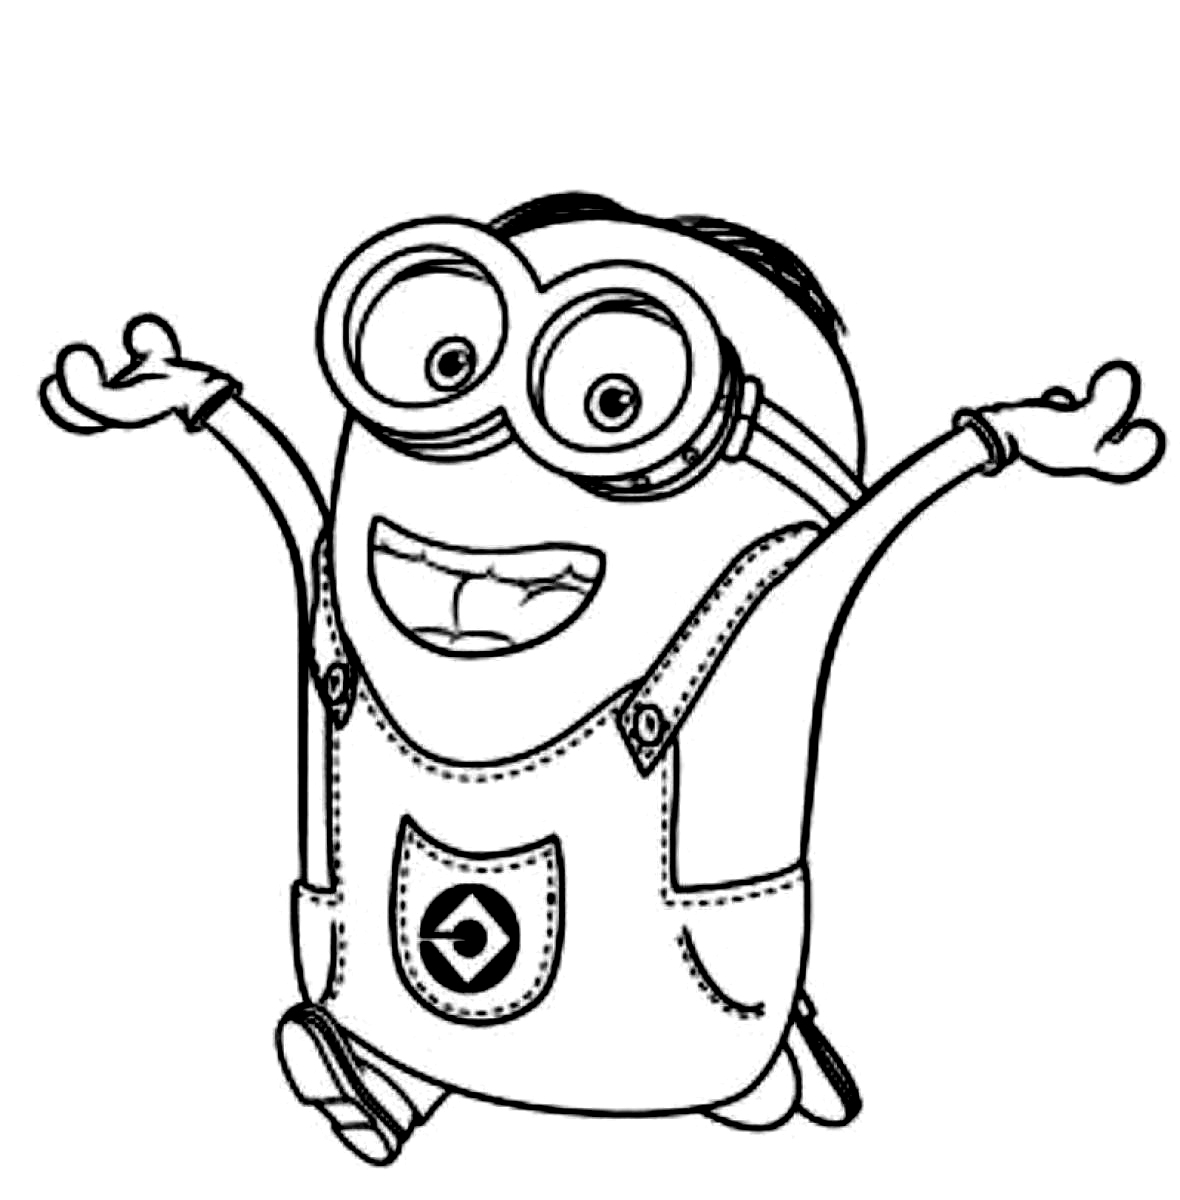 despicable me coloring pages printable free printable despicable me coloring pages for kids